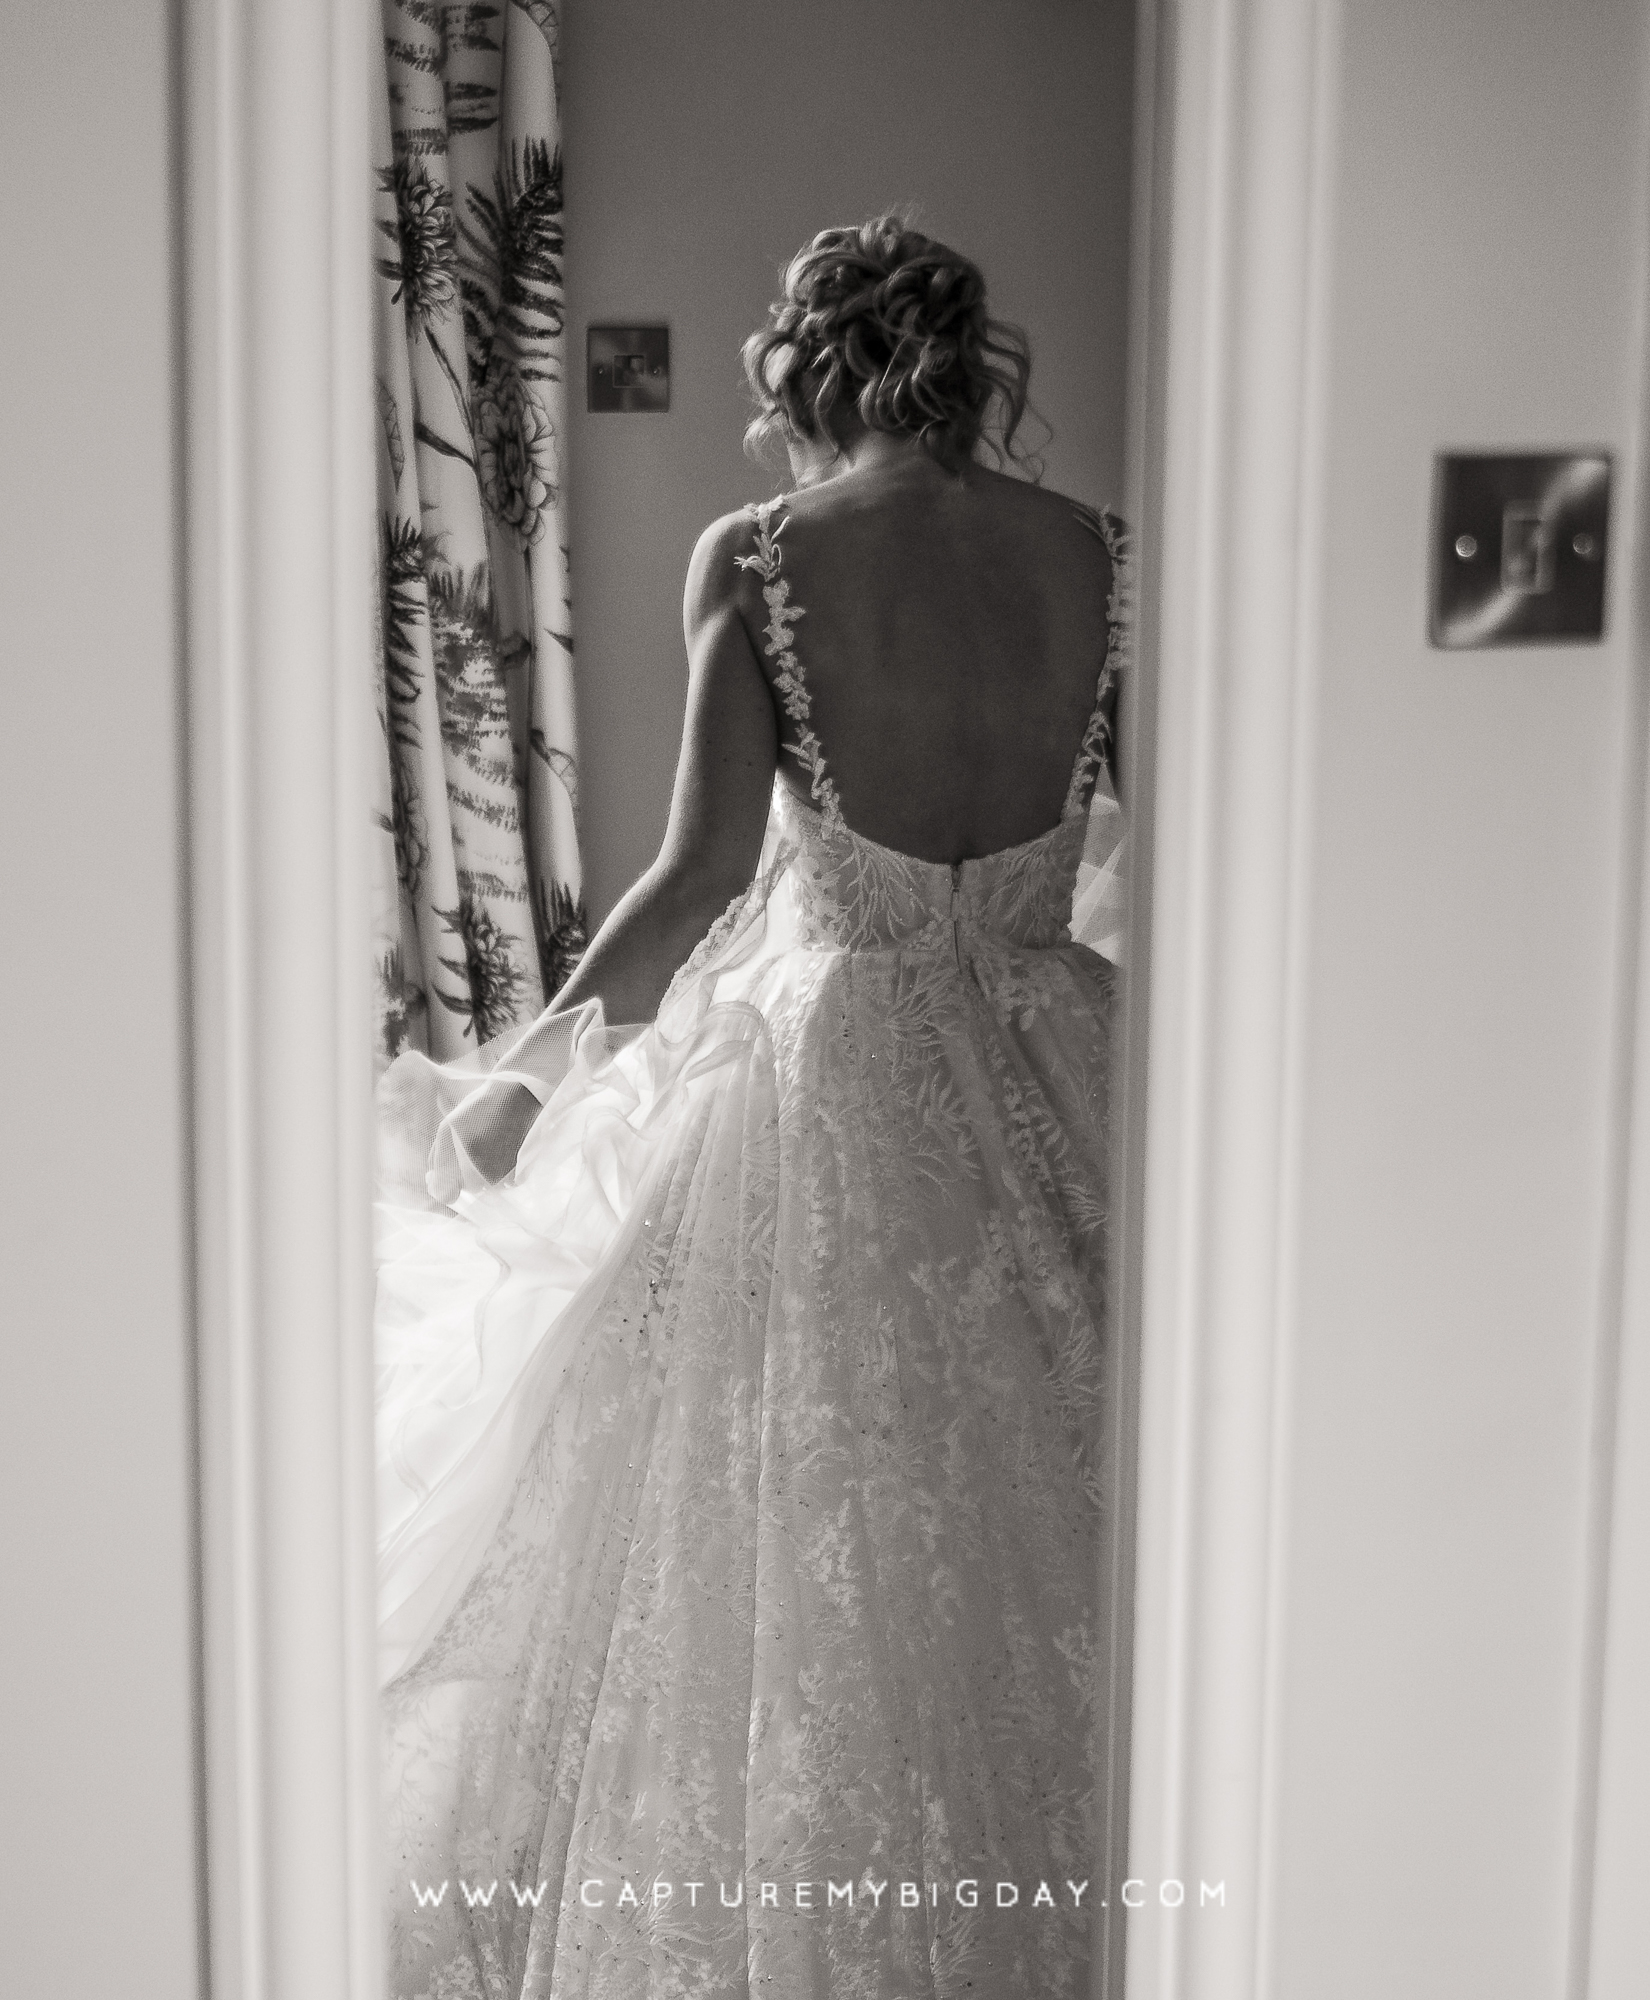 back of brides dress in a mirror